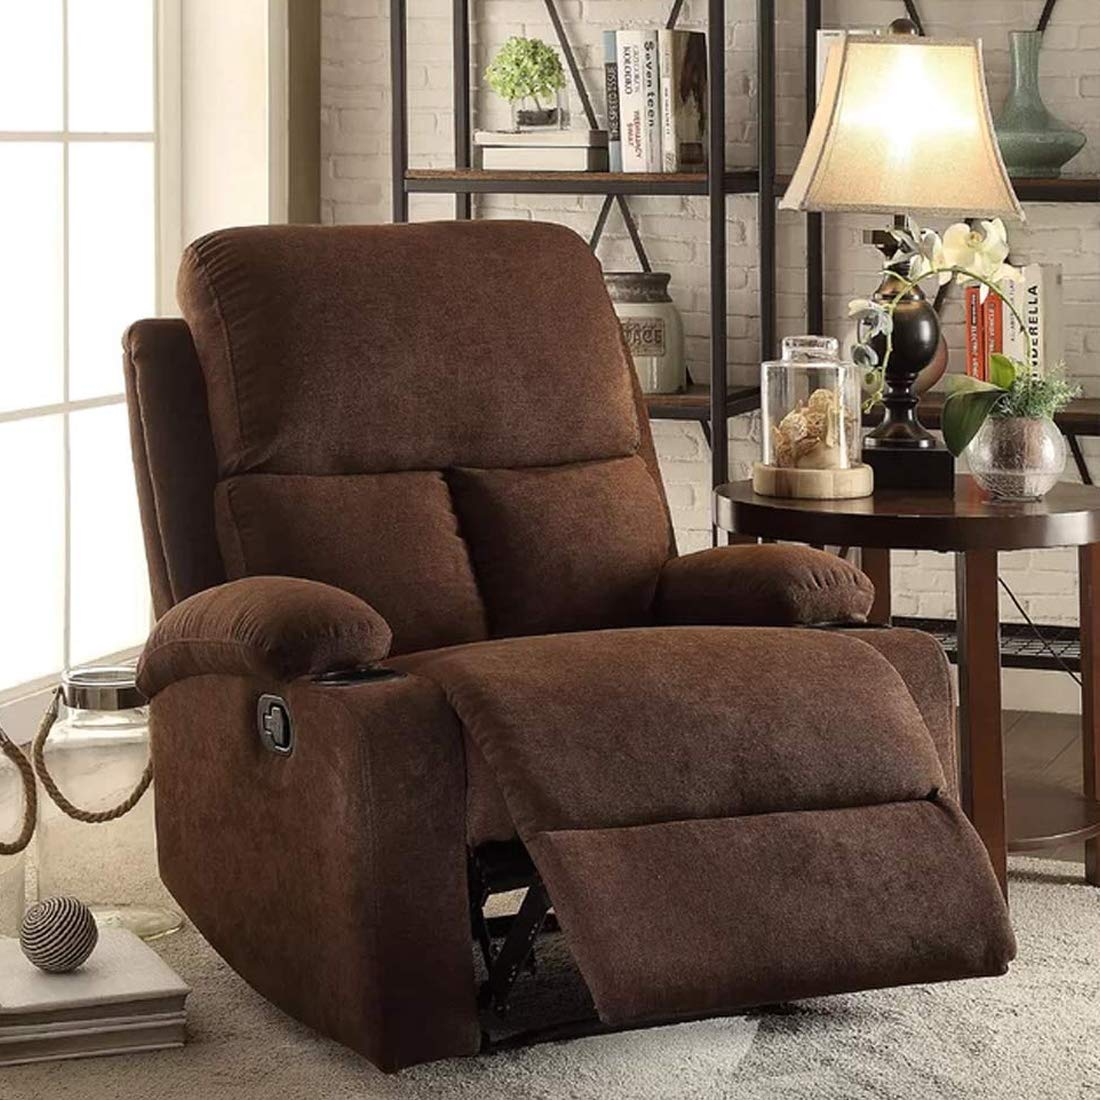 Furny Elisse One Seater Living Room Single Seater Recliner  Brown  Manual Recliner with German Recliner Mechanism Recliners